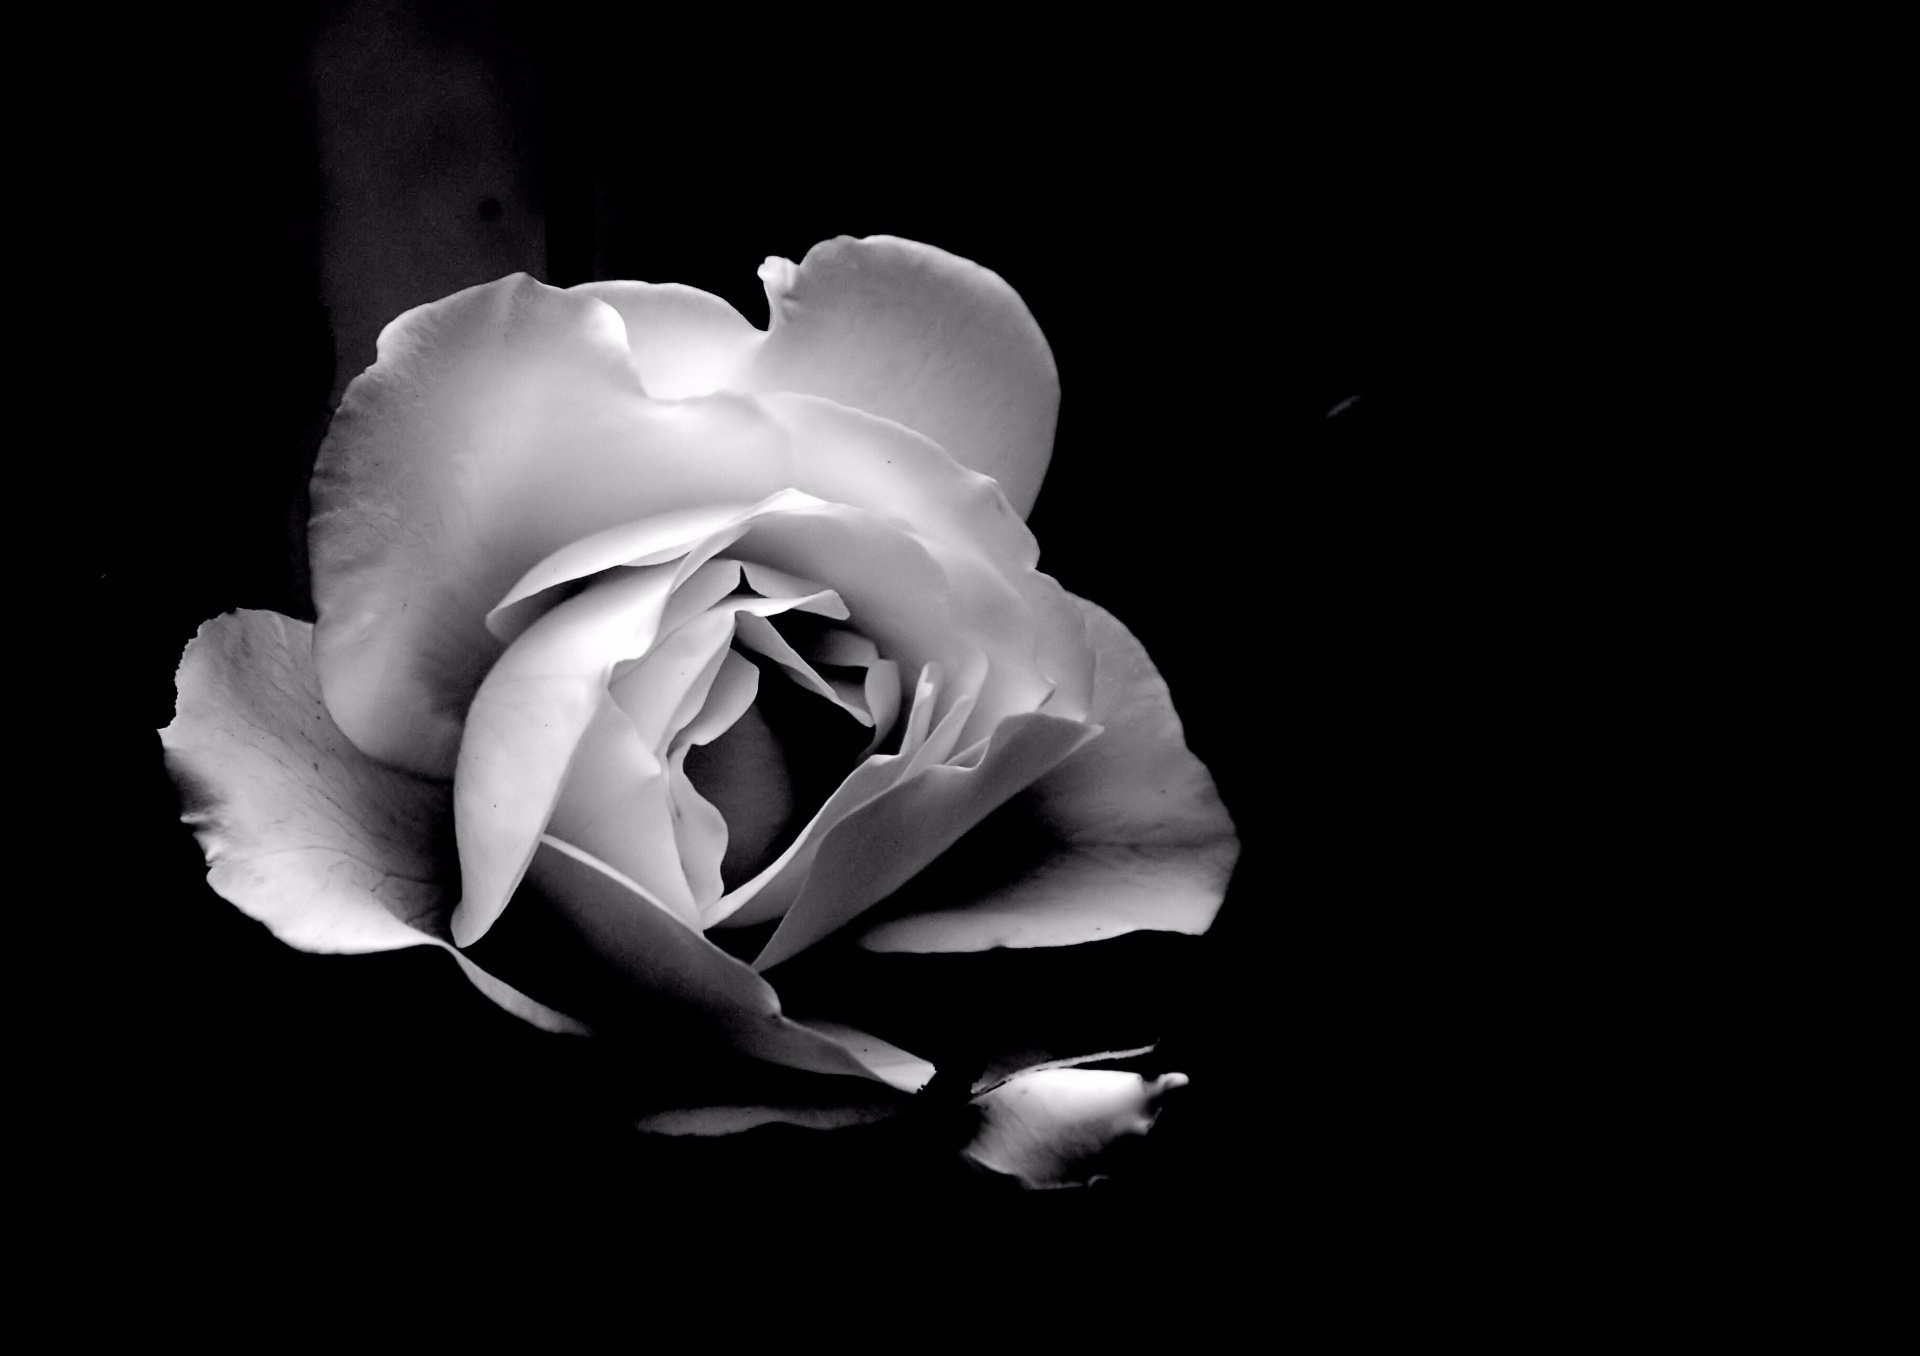 White art black photography and